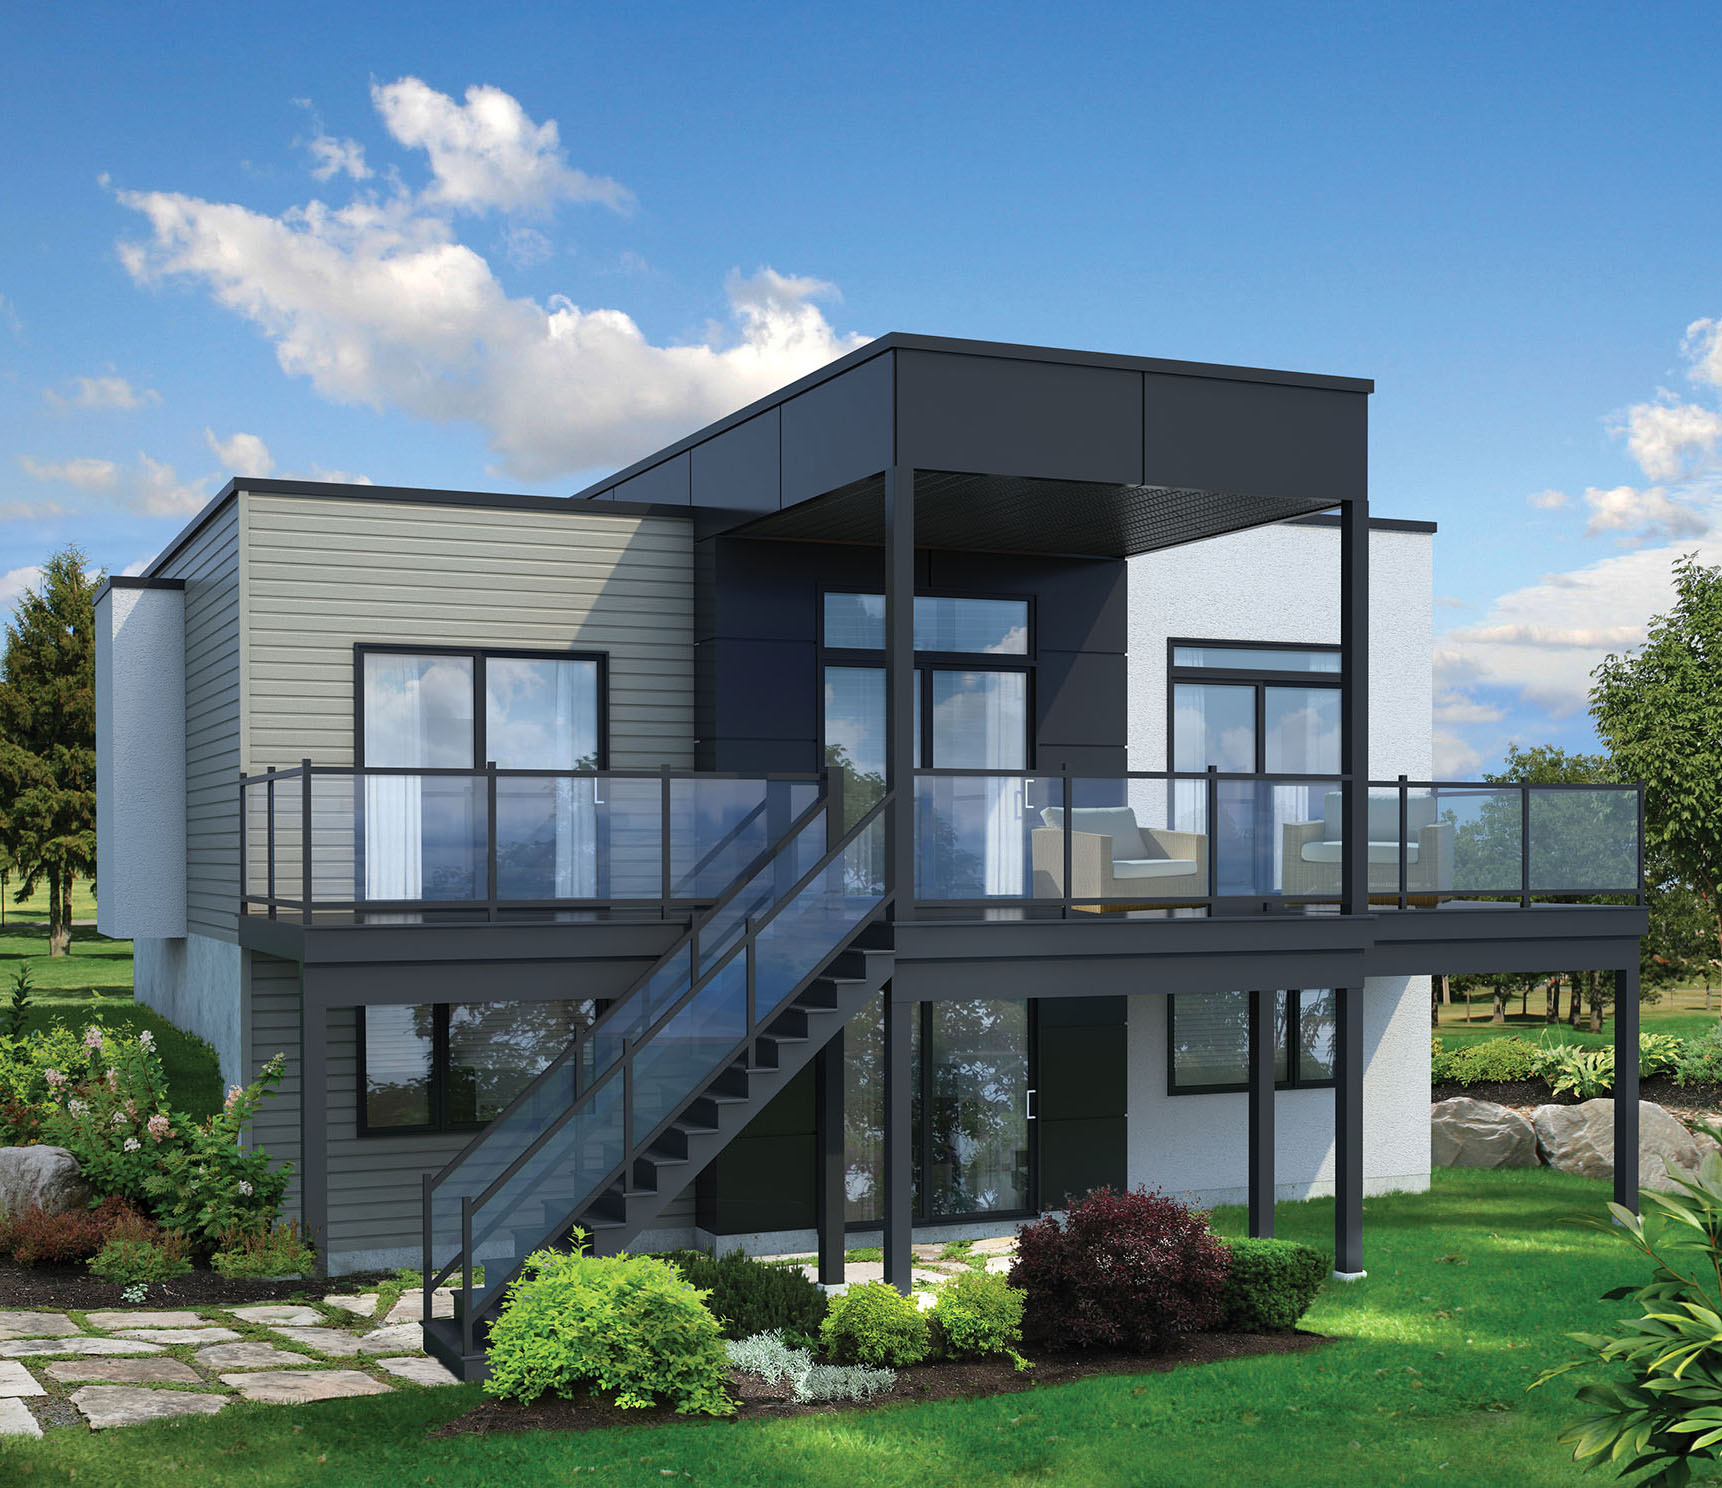 2 bed modern house plan for sloping lot 80780pm for Home designs on sloped land